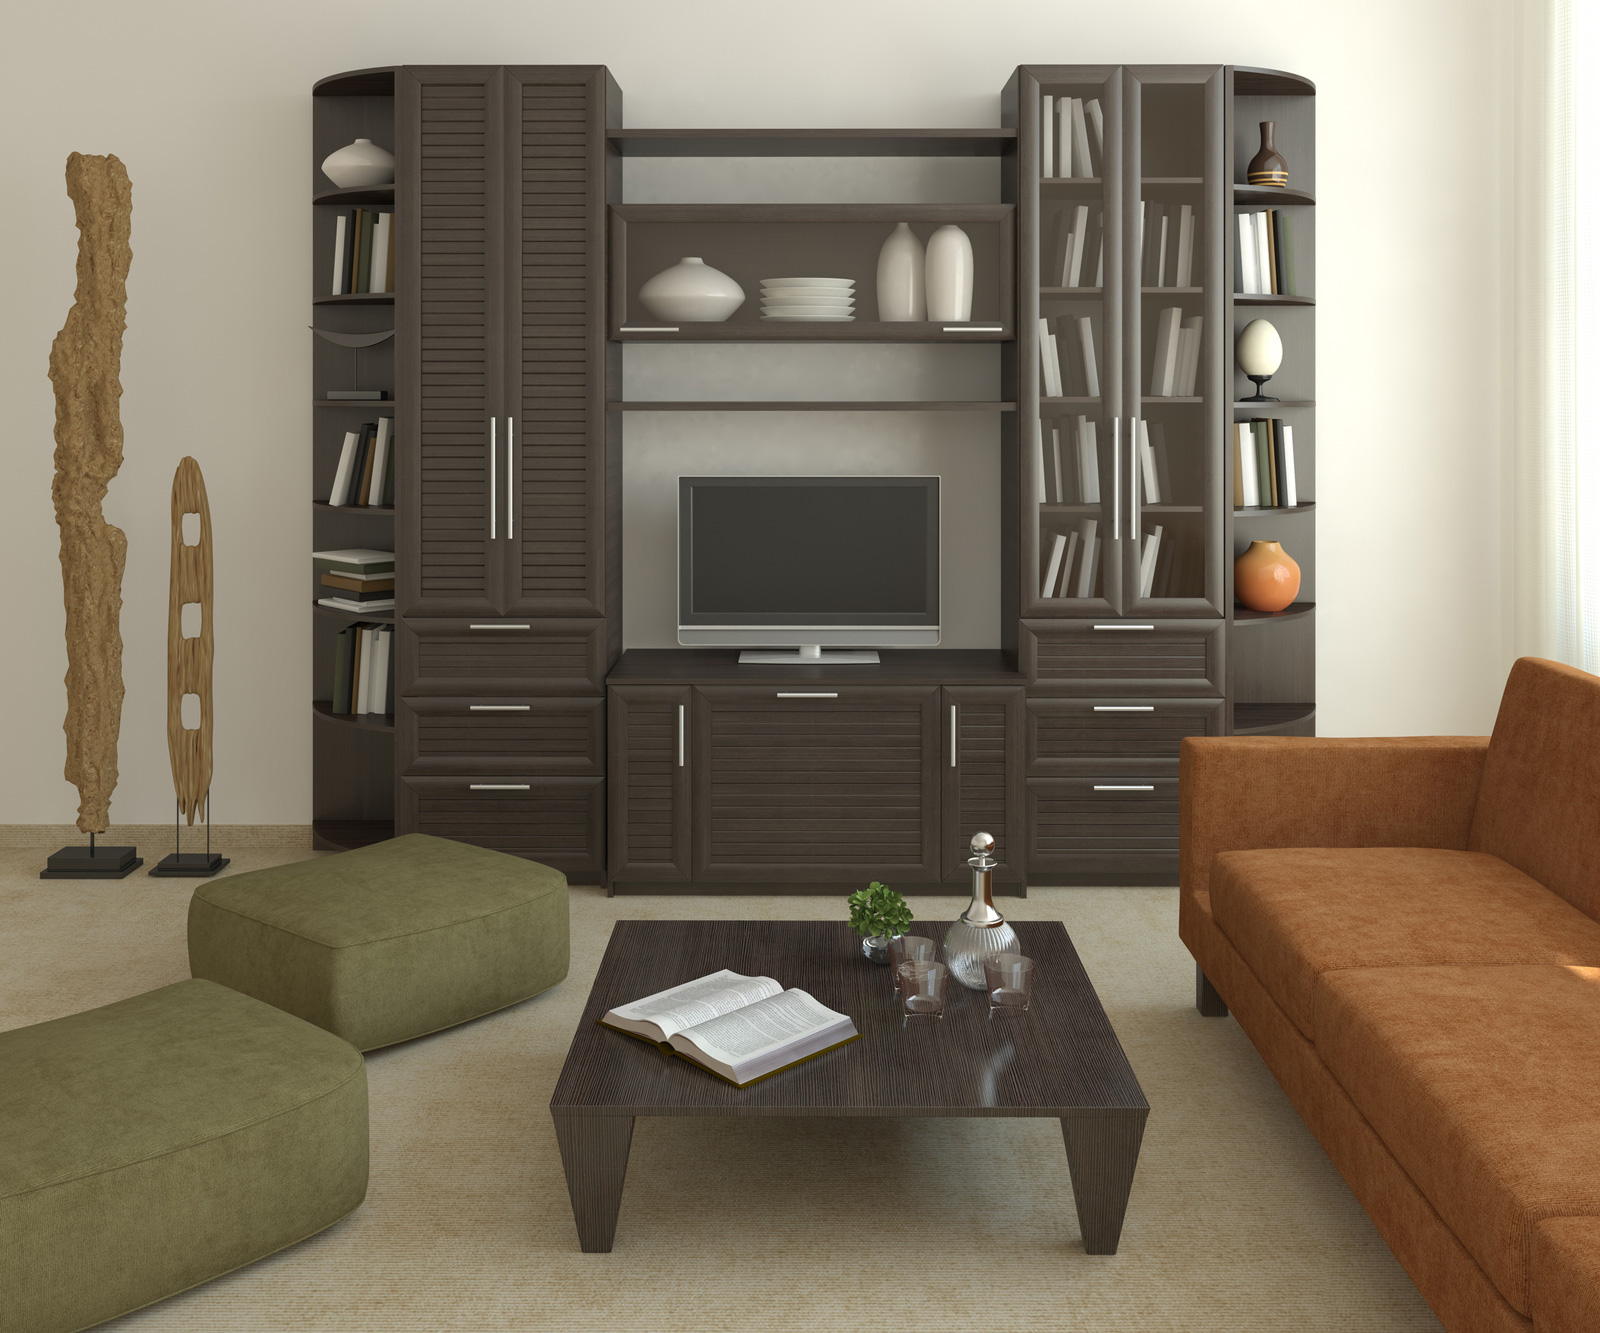 Living Room Living Room Cabinet Designs modern interior design living room 9566 hd wallpapers in table cabinet solid wood furniture serbagunamarinecom for room